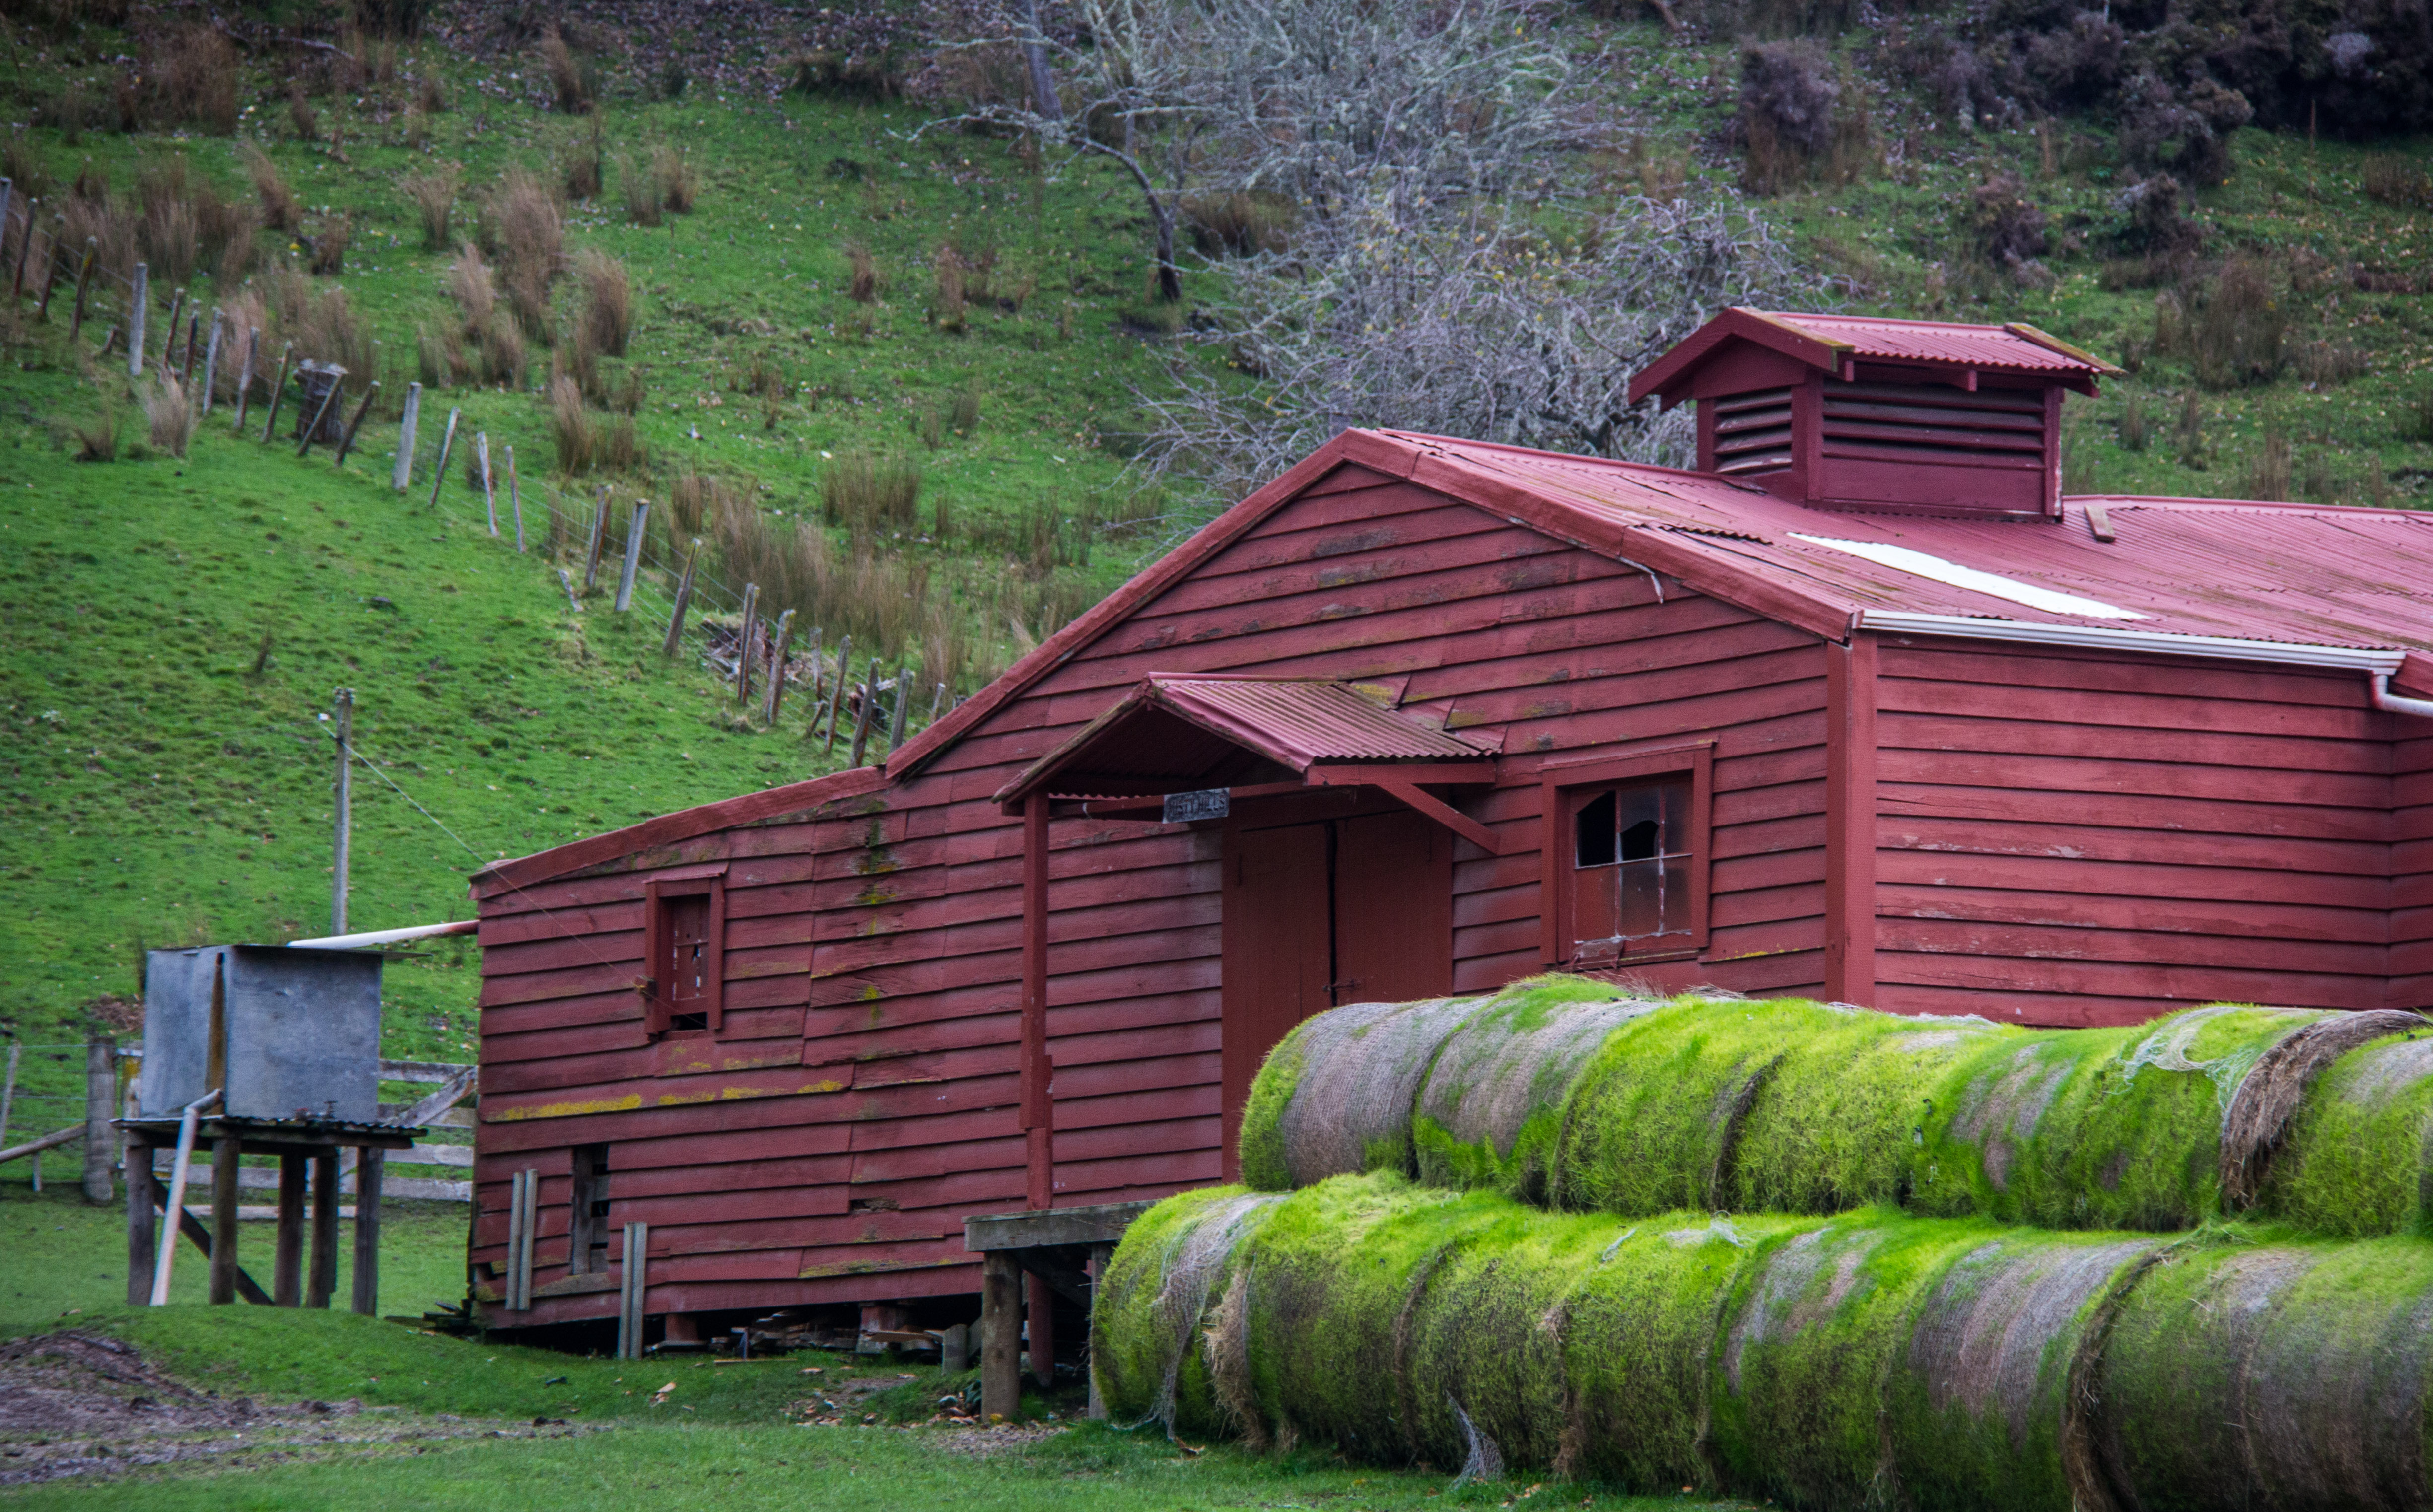 Red Shed green haybales